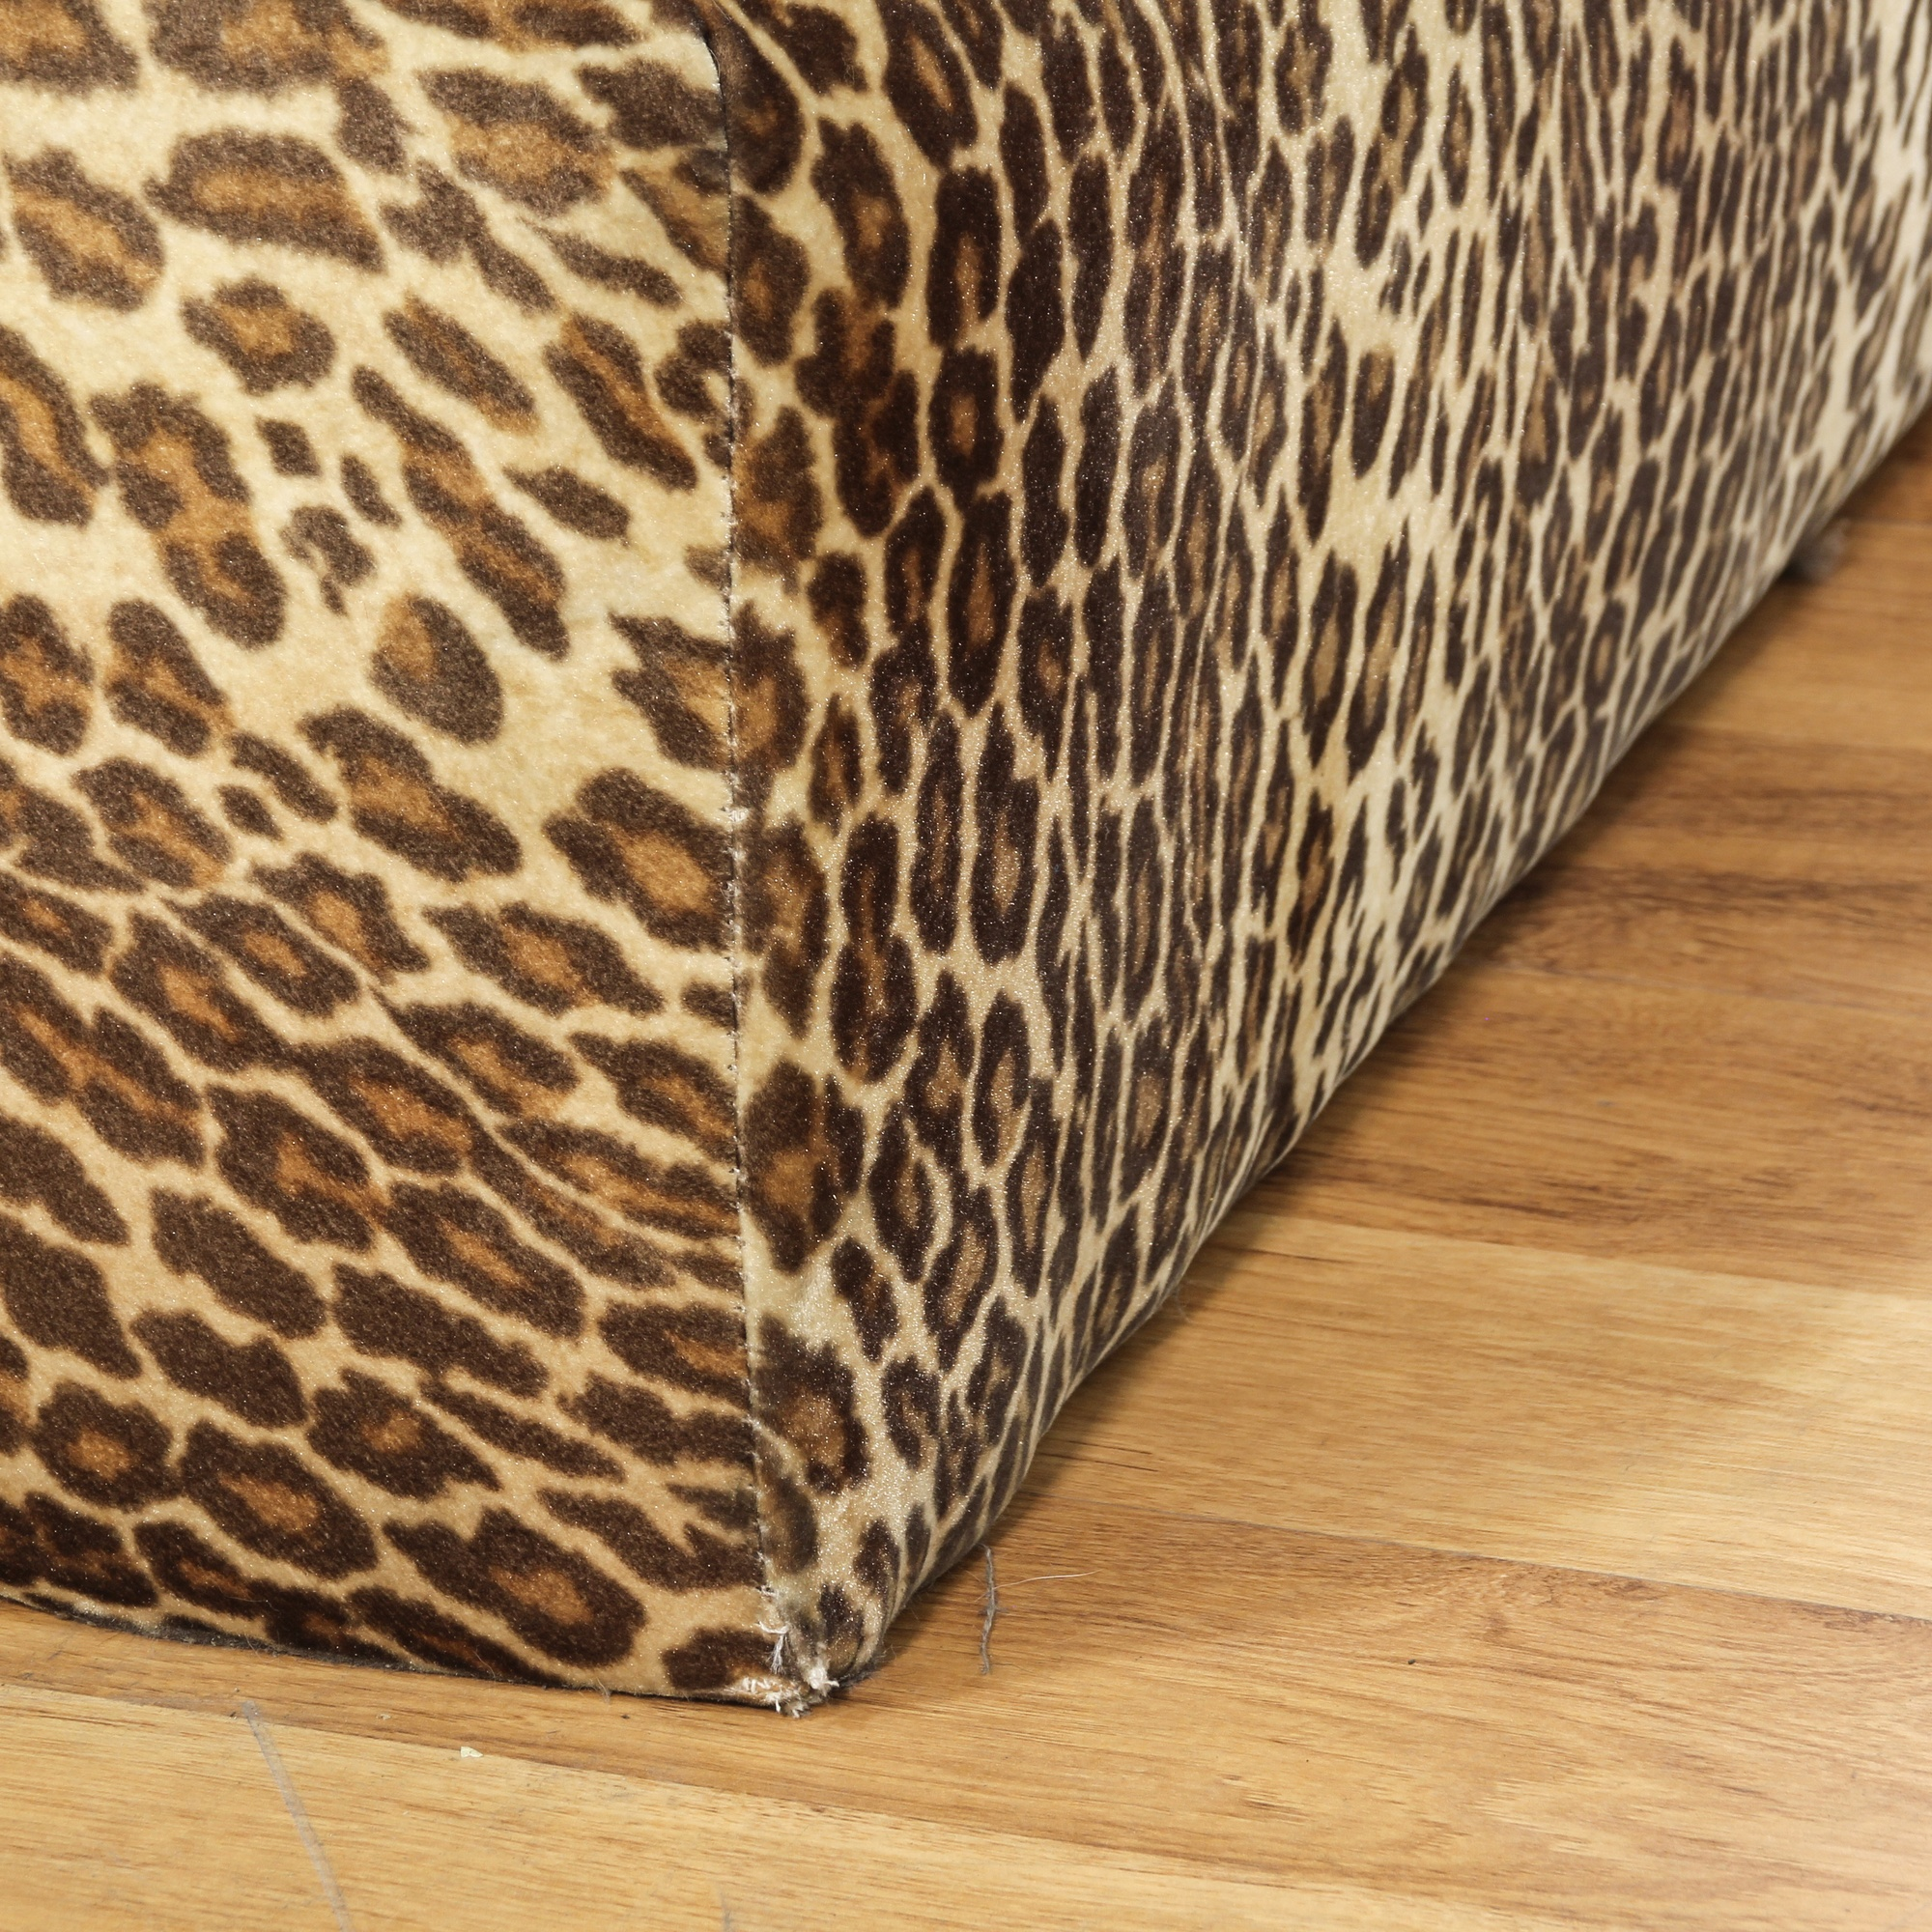 Leopard print chaise lounge loveseat vintage furniture for Animal print chaise